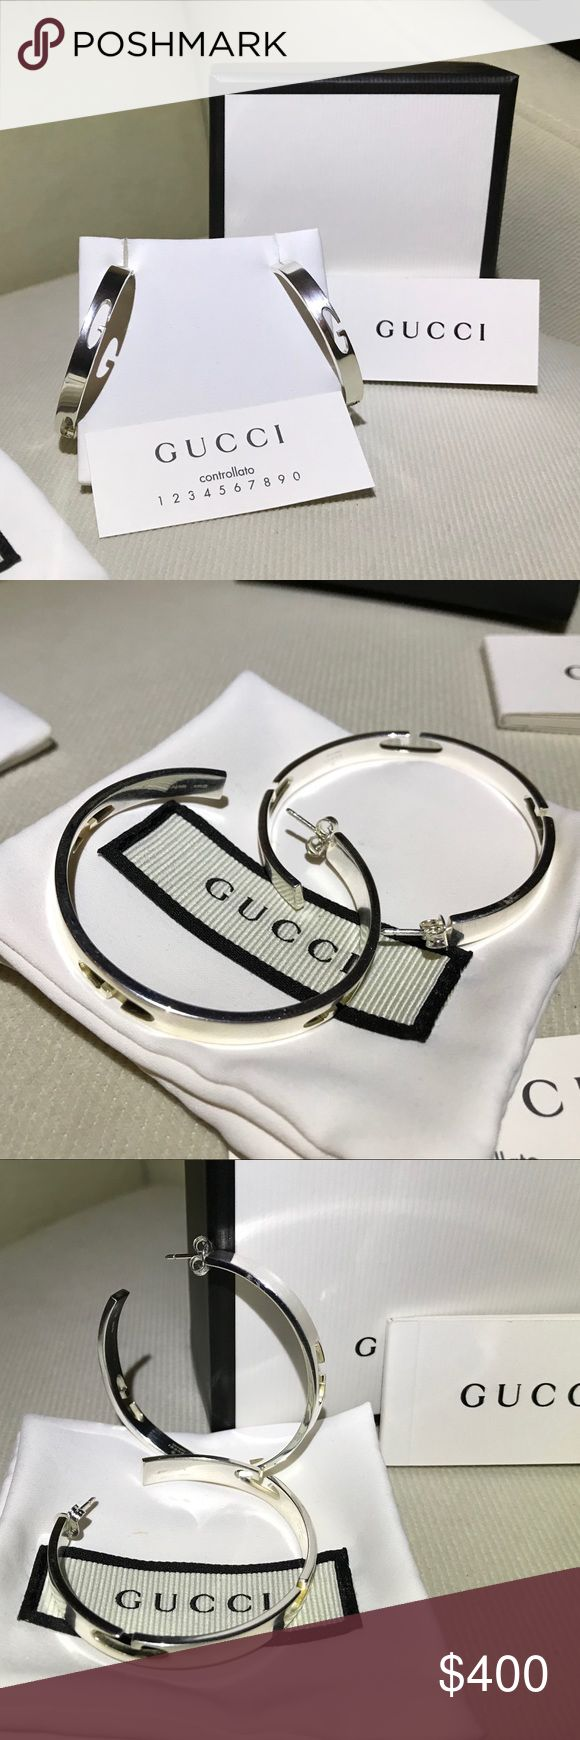 50d5374fd6ab Host Pick🎉 Gucci.925 sterling large hoop earrings NWT